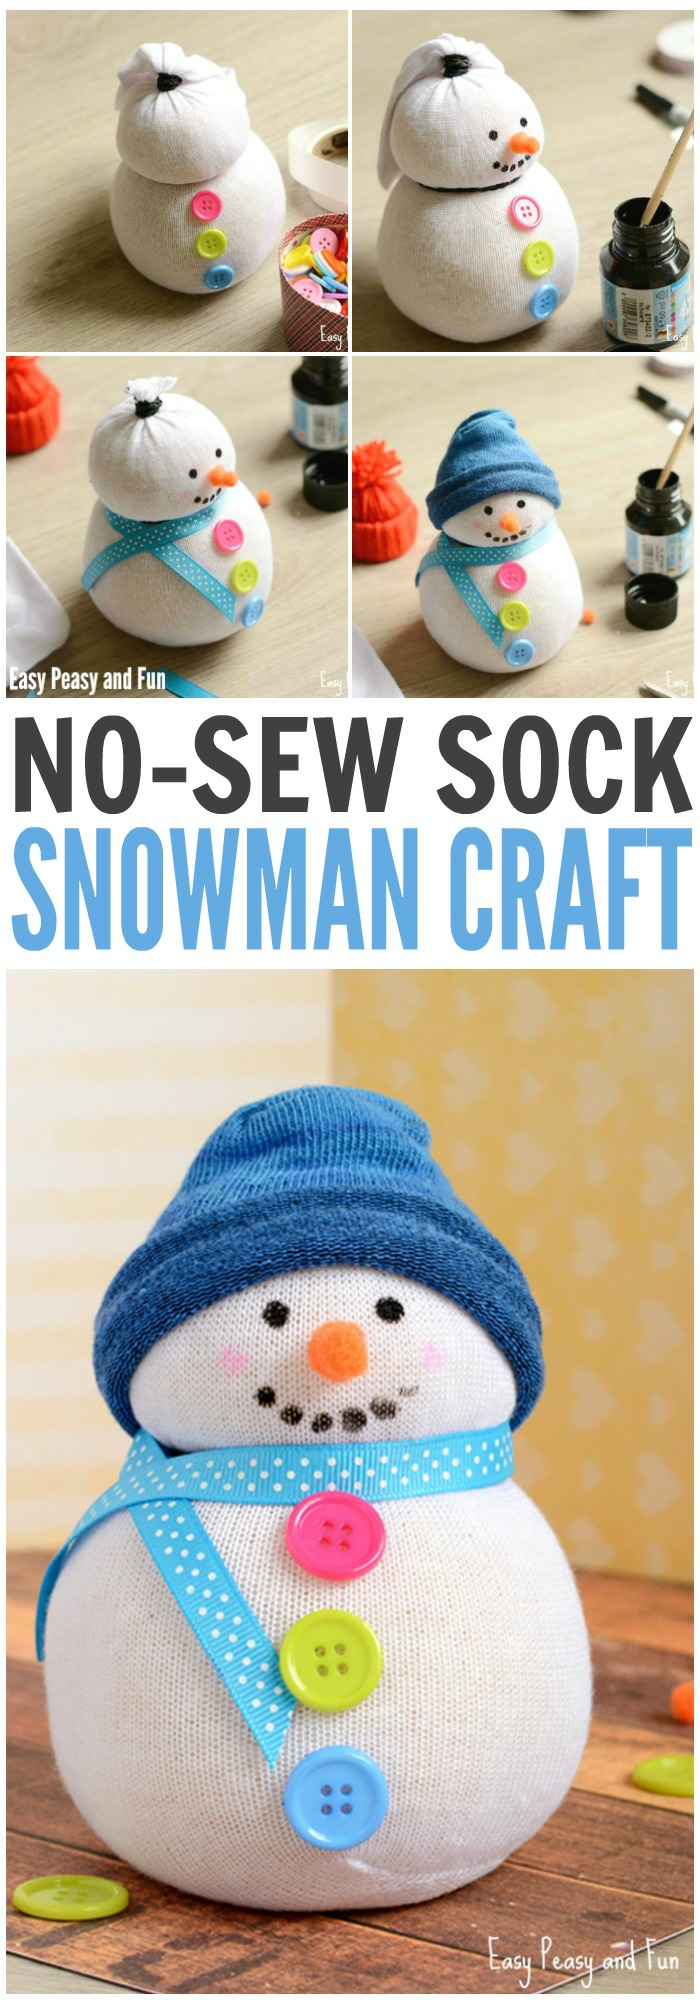 little snowman made from white sock, three colorful buttons, blue ribbon for scarf, pace drawn with black paint, nose made from orange felt, blue sock cutout for hat, more buttons and items in background